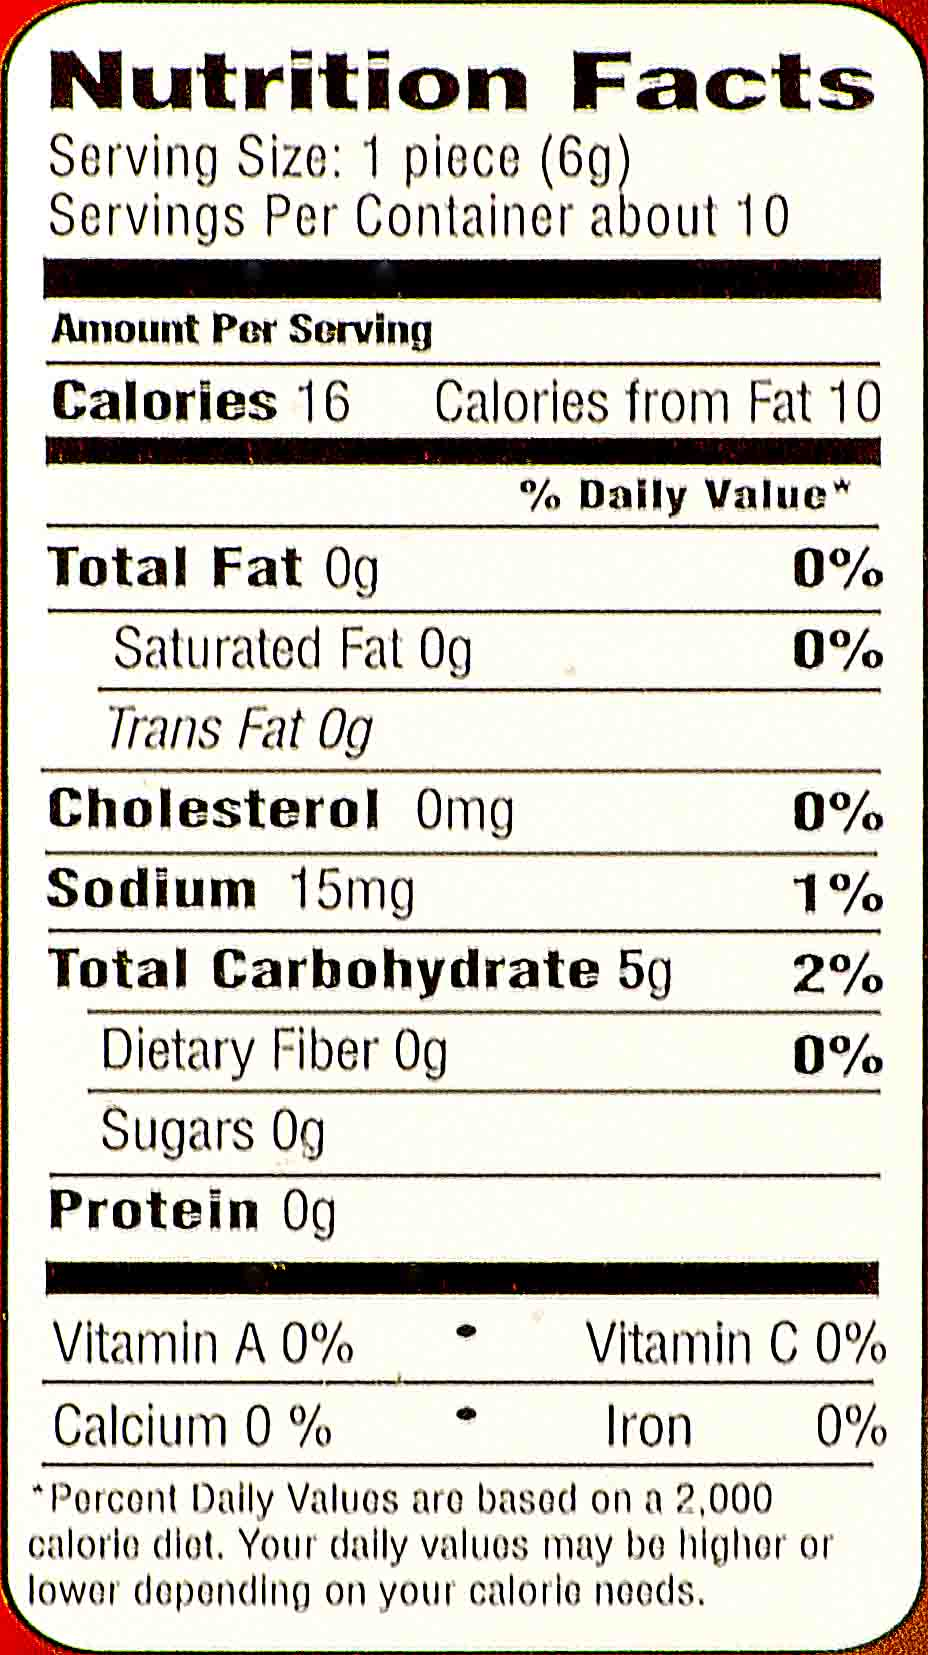 Kays Naturals Low Carb Cinnamon Toast Pretzels 1.5oz